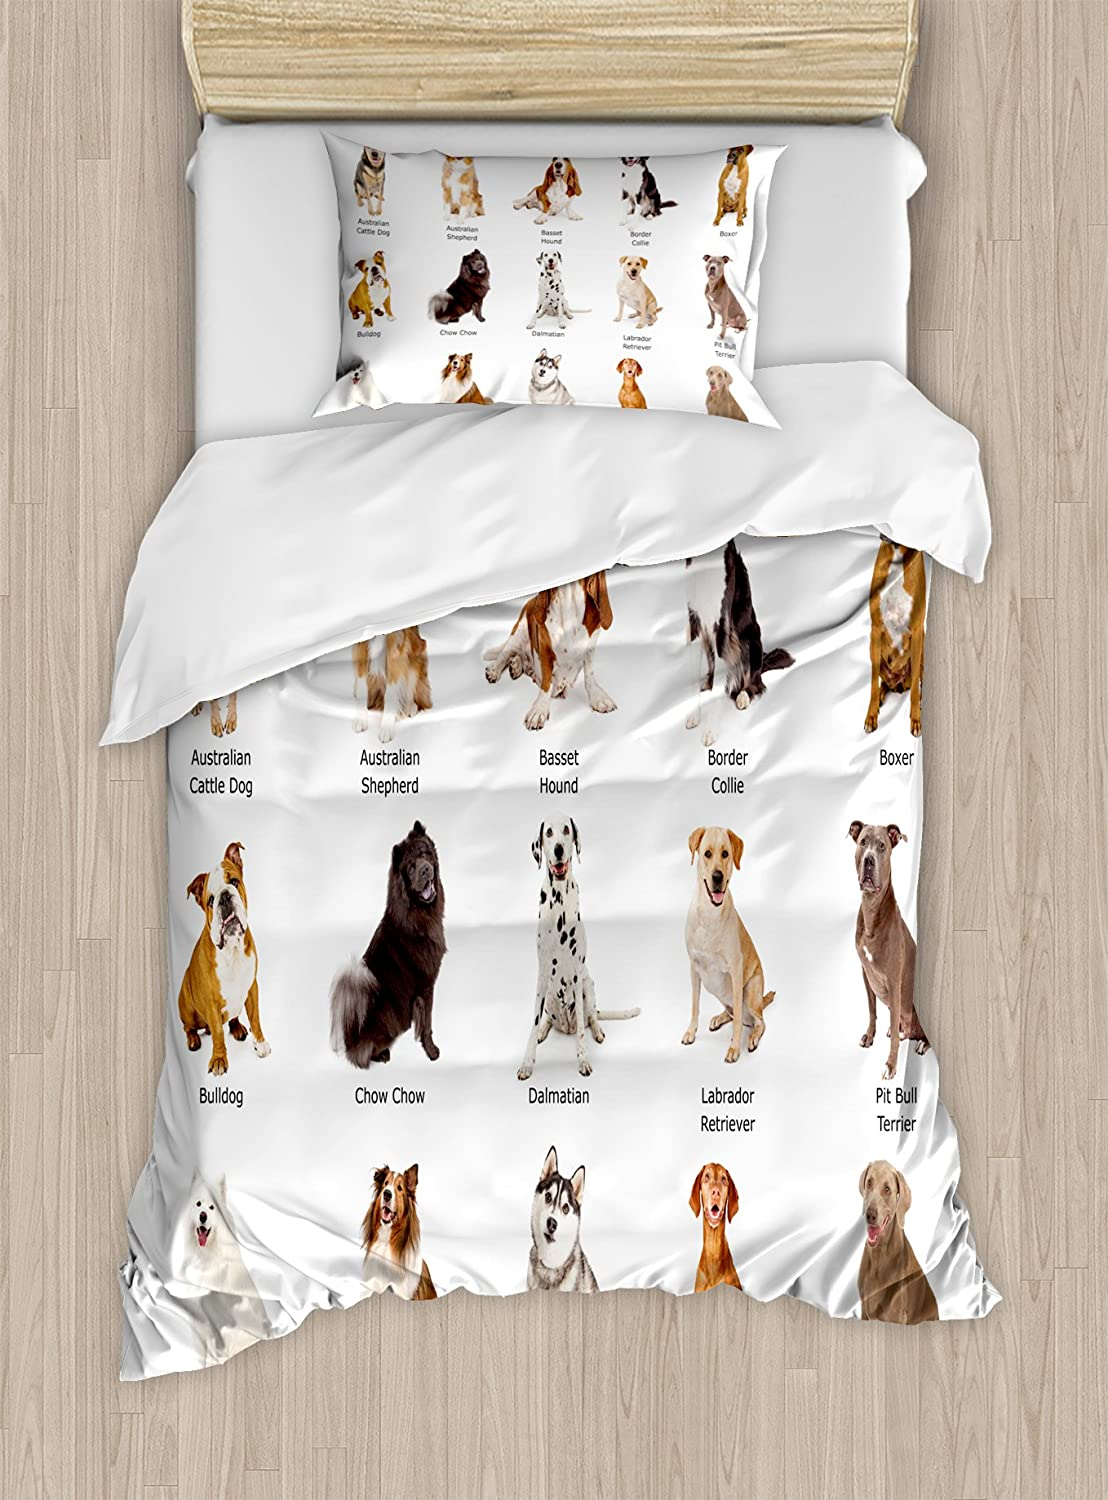 ba460eb4cfdbe Ambesonne Dog Duvet Cover Set Twin Size, A Group of Different Puppy Breeds  Family Type Species Dalmatian Husky Bulldog Image Print Pet Theme, A ...